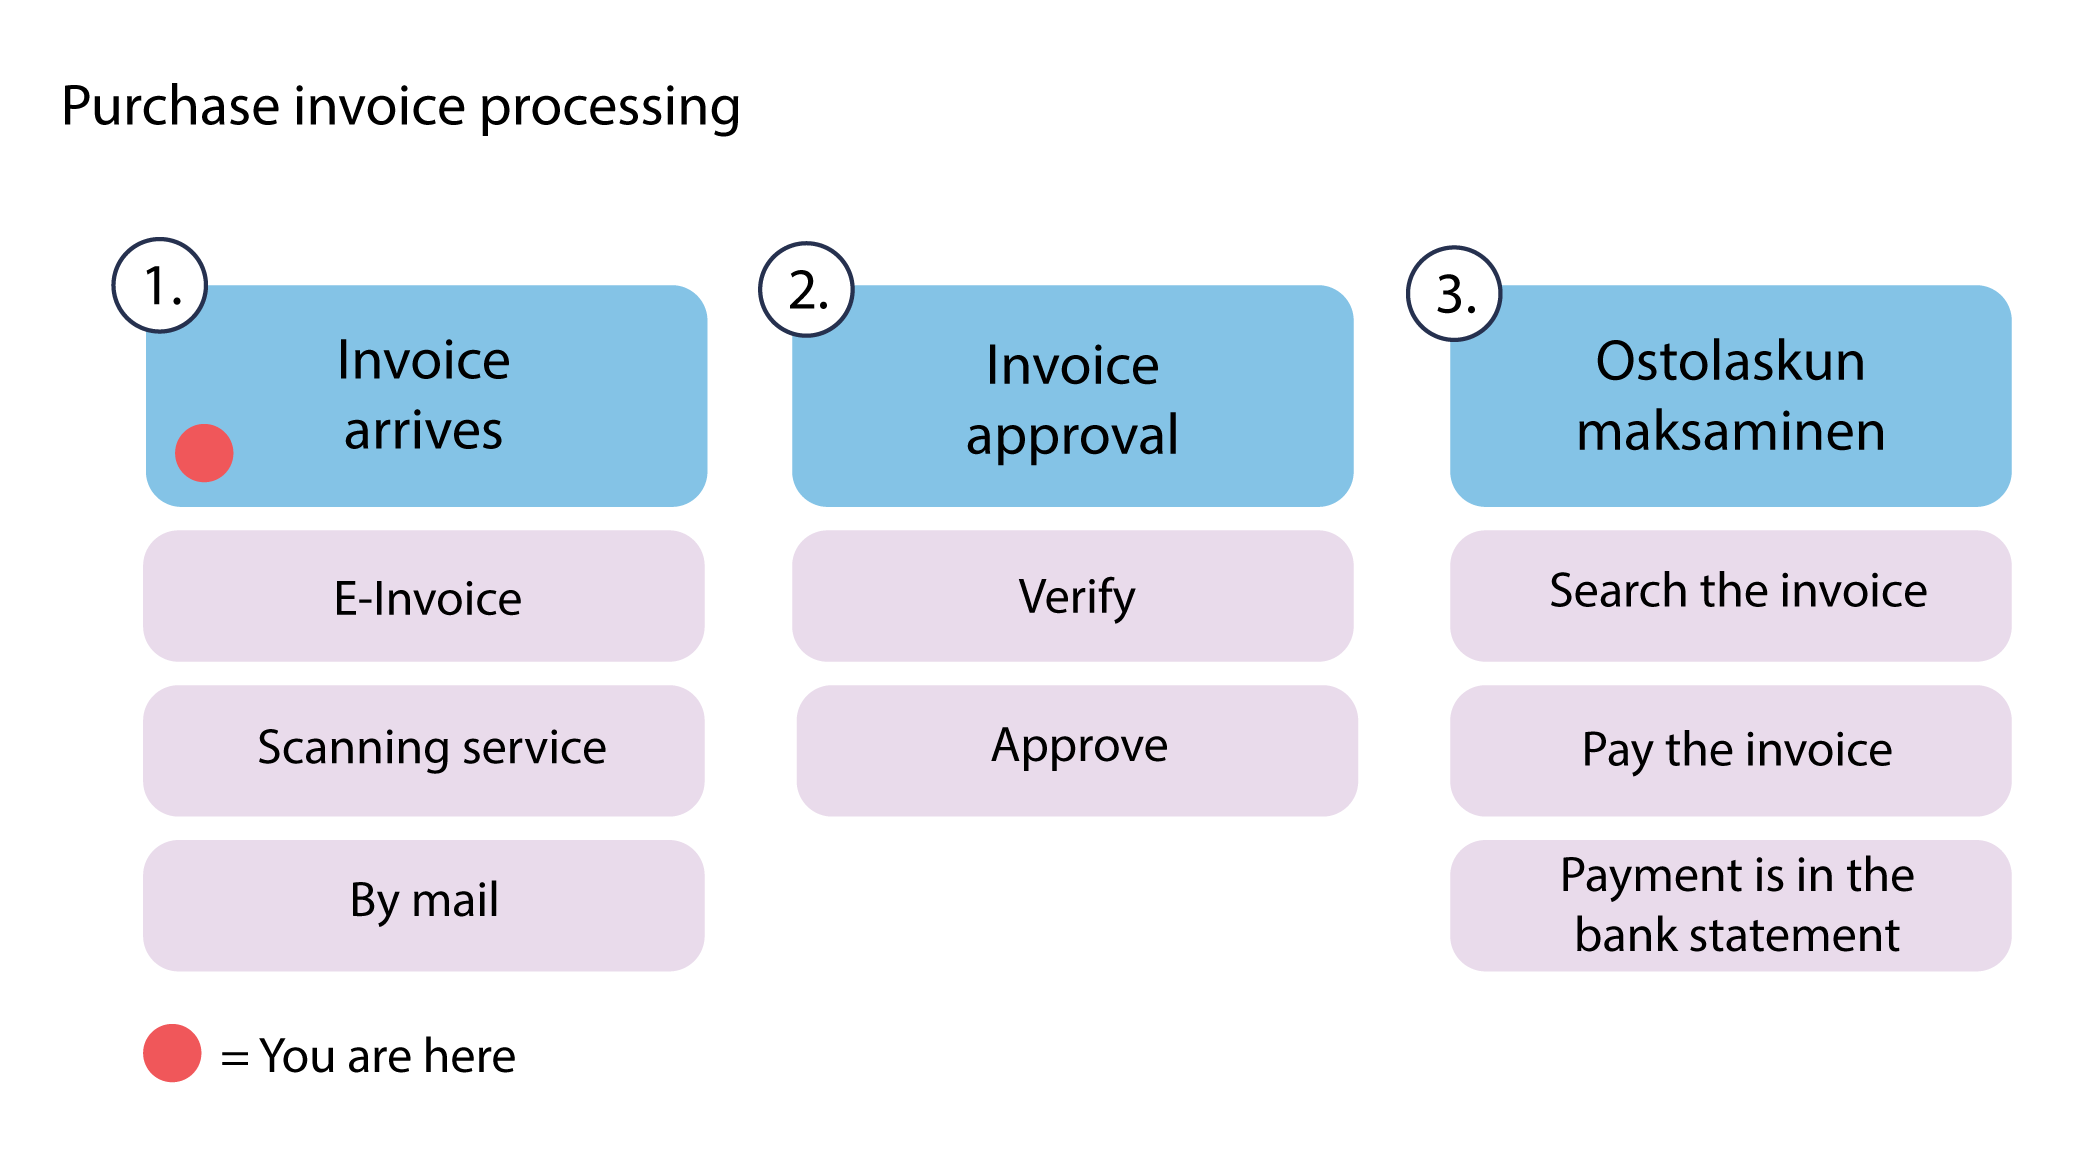 Ostolaskun_prosessi_Purchase_invoice_processing_2.png